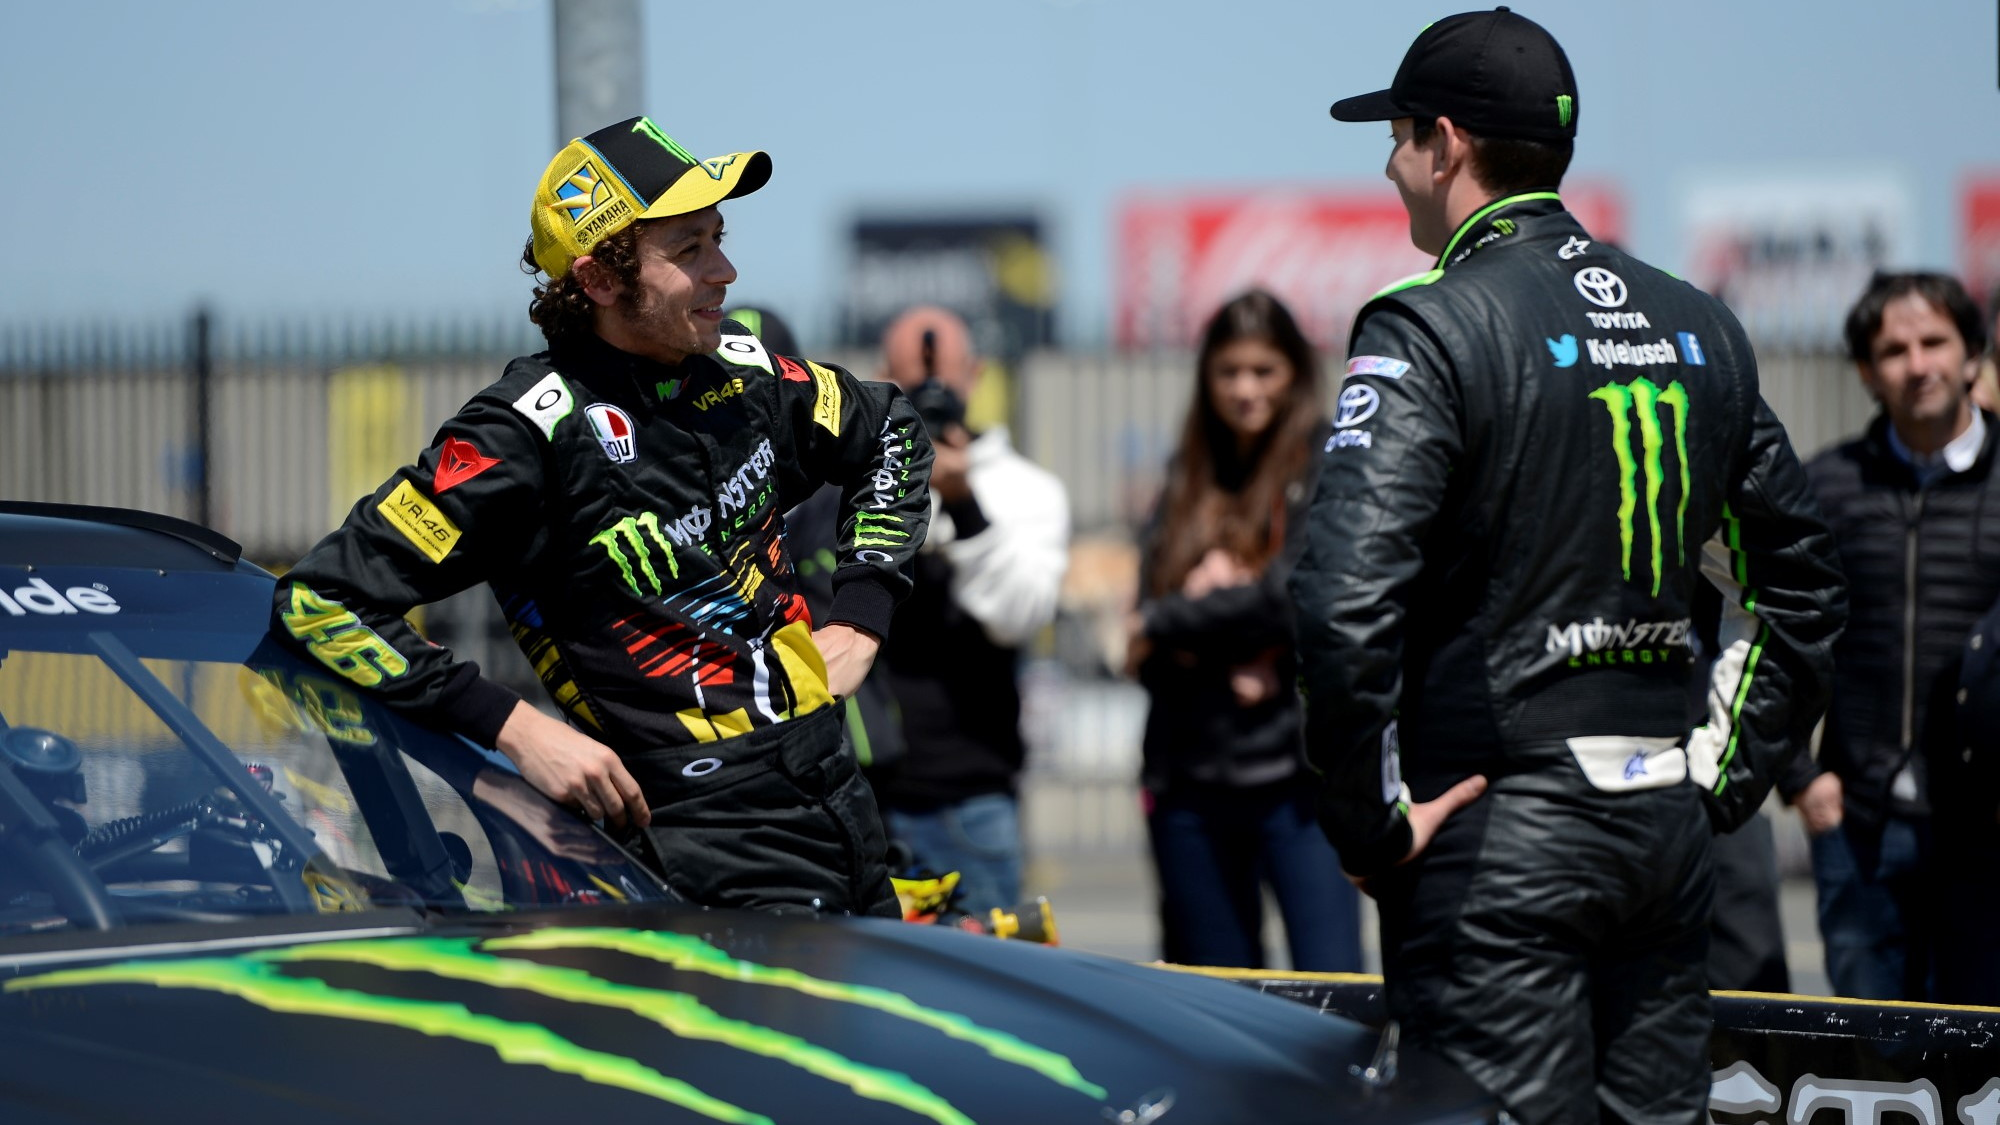 Valentino Rossi tests Kyle Busch's NASCAR Nationwide Toyota Camry